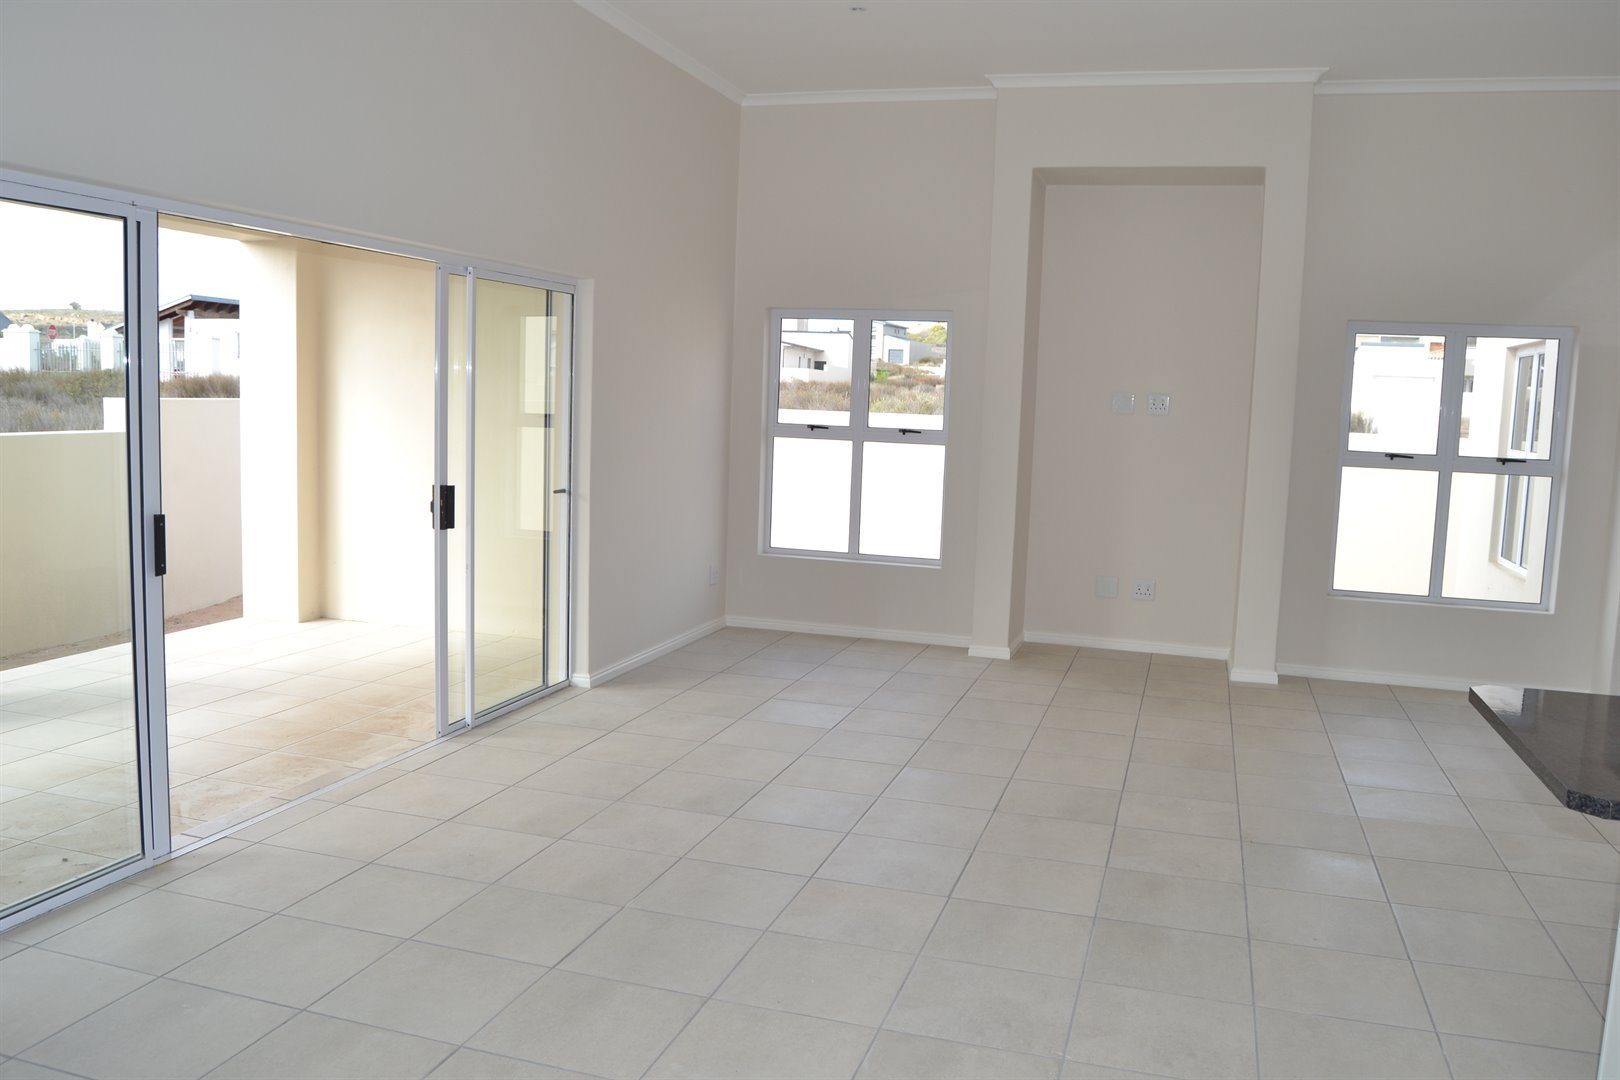 Sunset Estate property for sale. Ref No: 13465474. Picture no 2